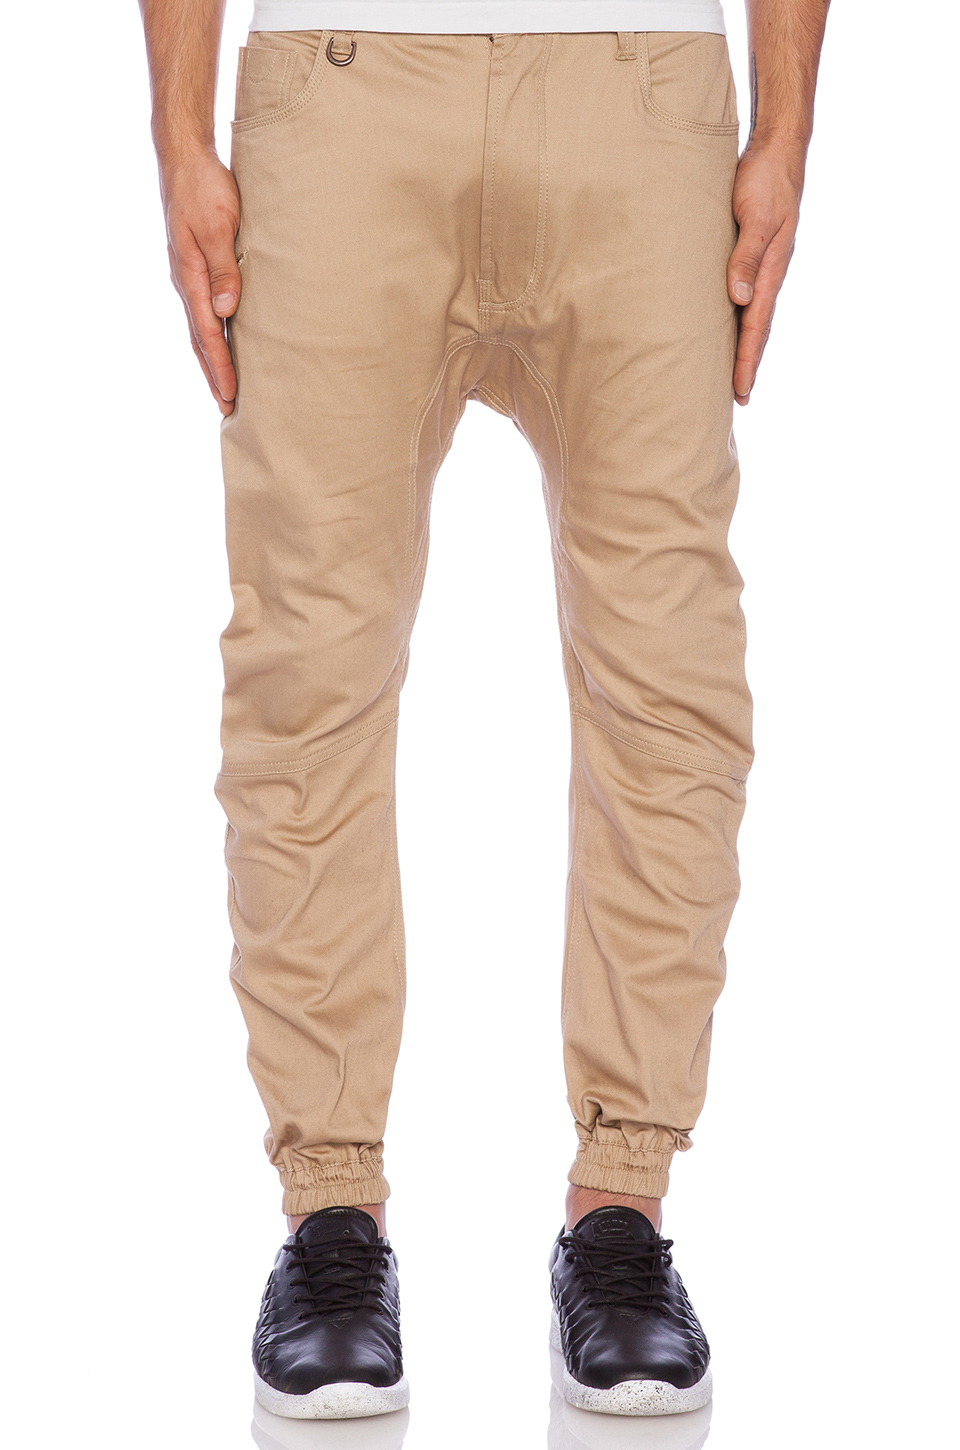 Publish Kelson Jogger in Tan